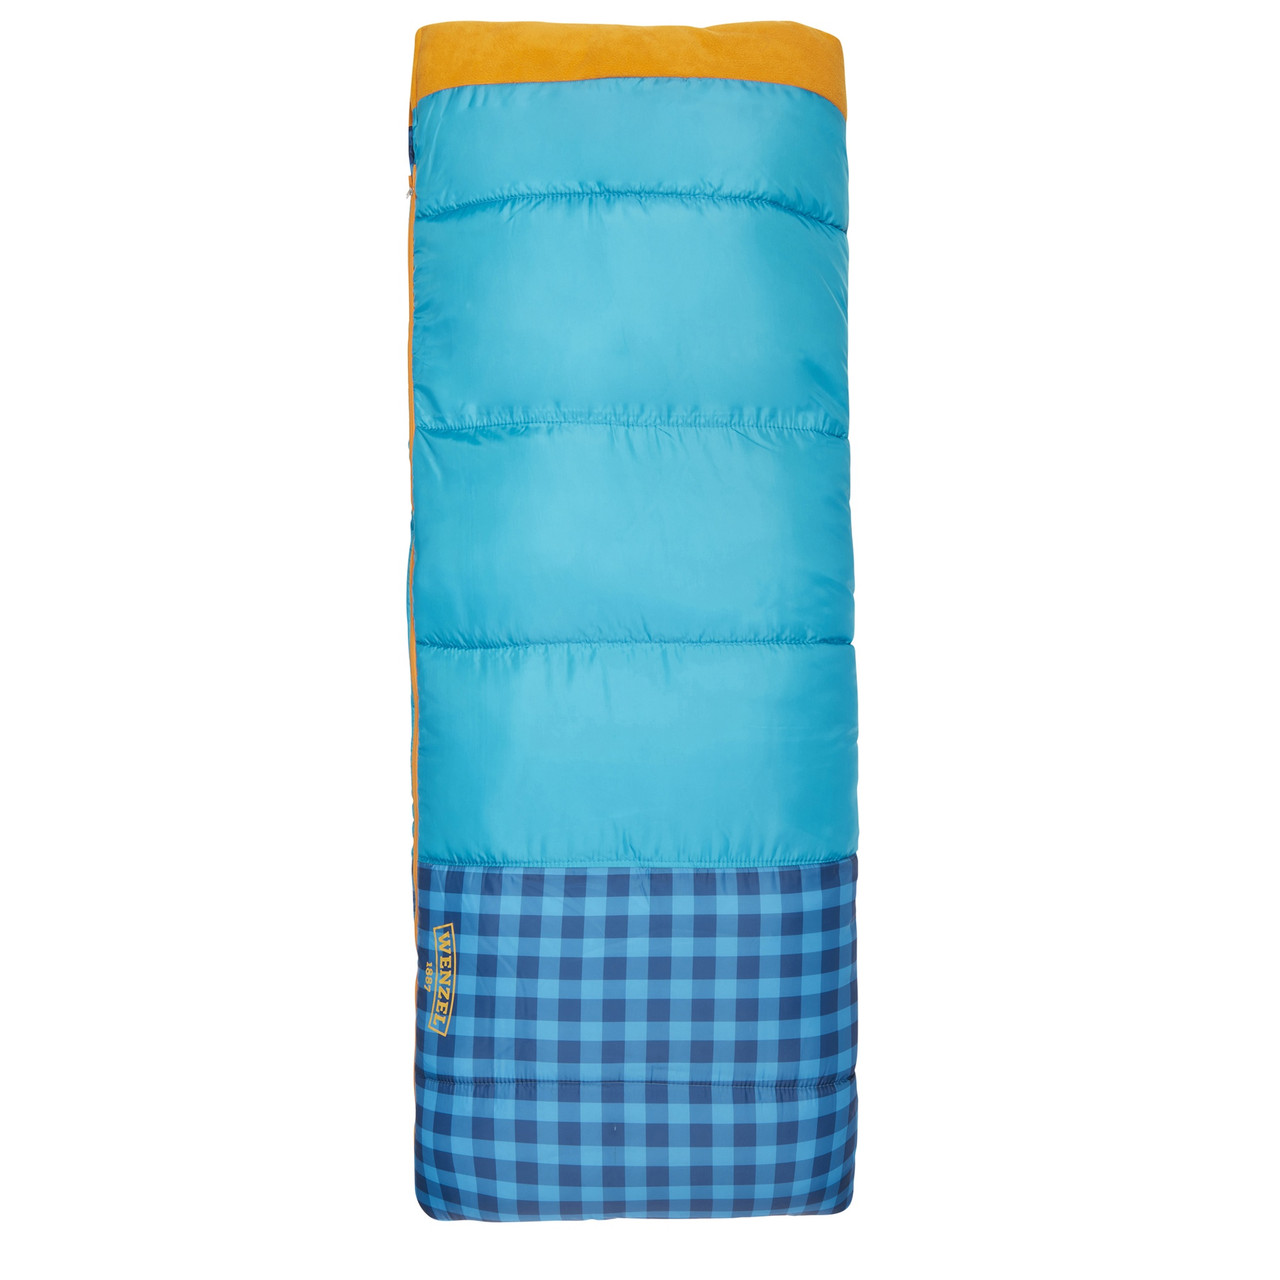 Wenzel Sapling Youth Sleeping Bag, blue, shown fully zipped